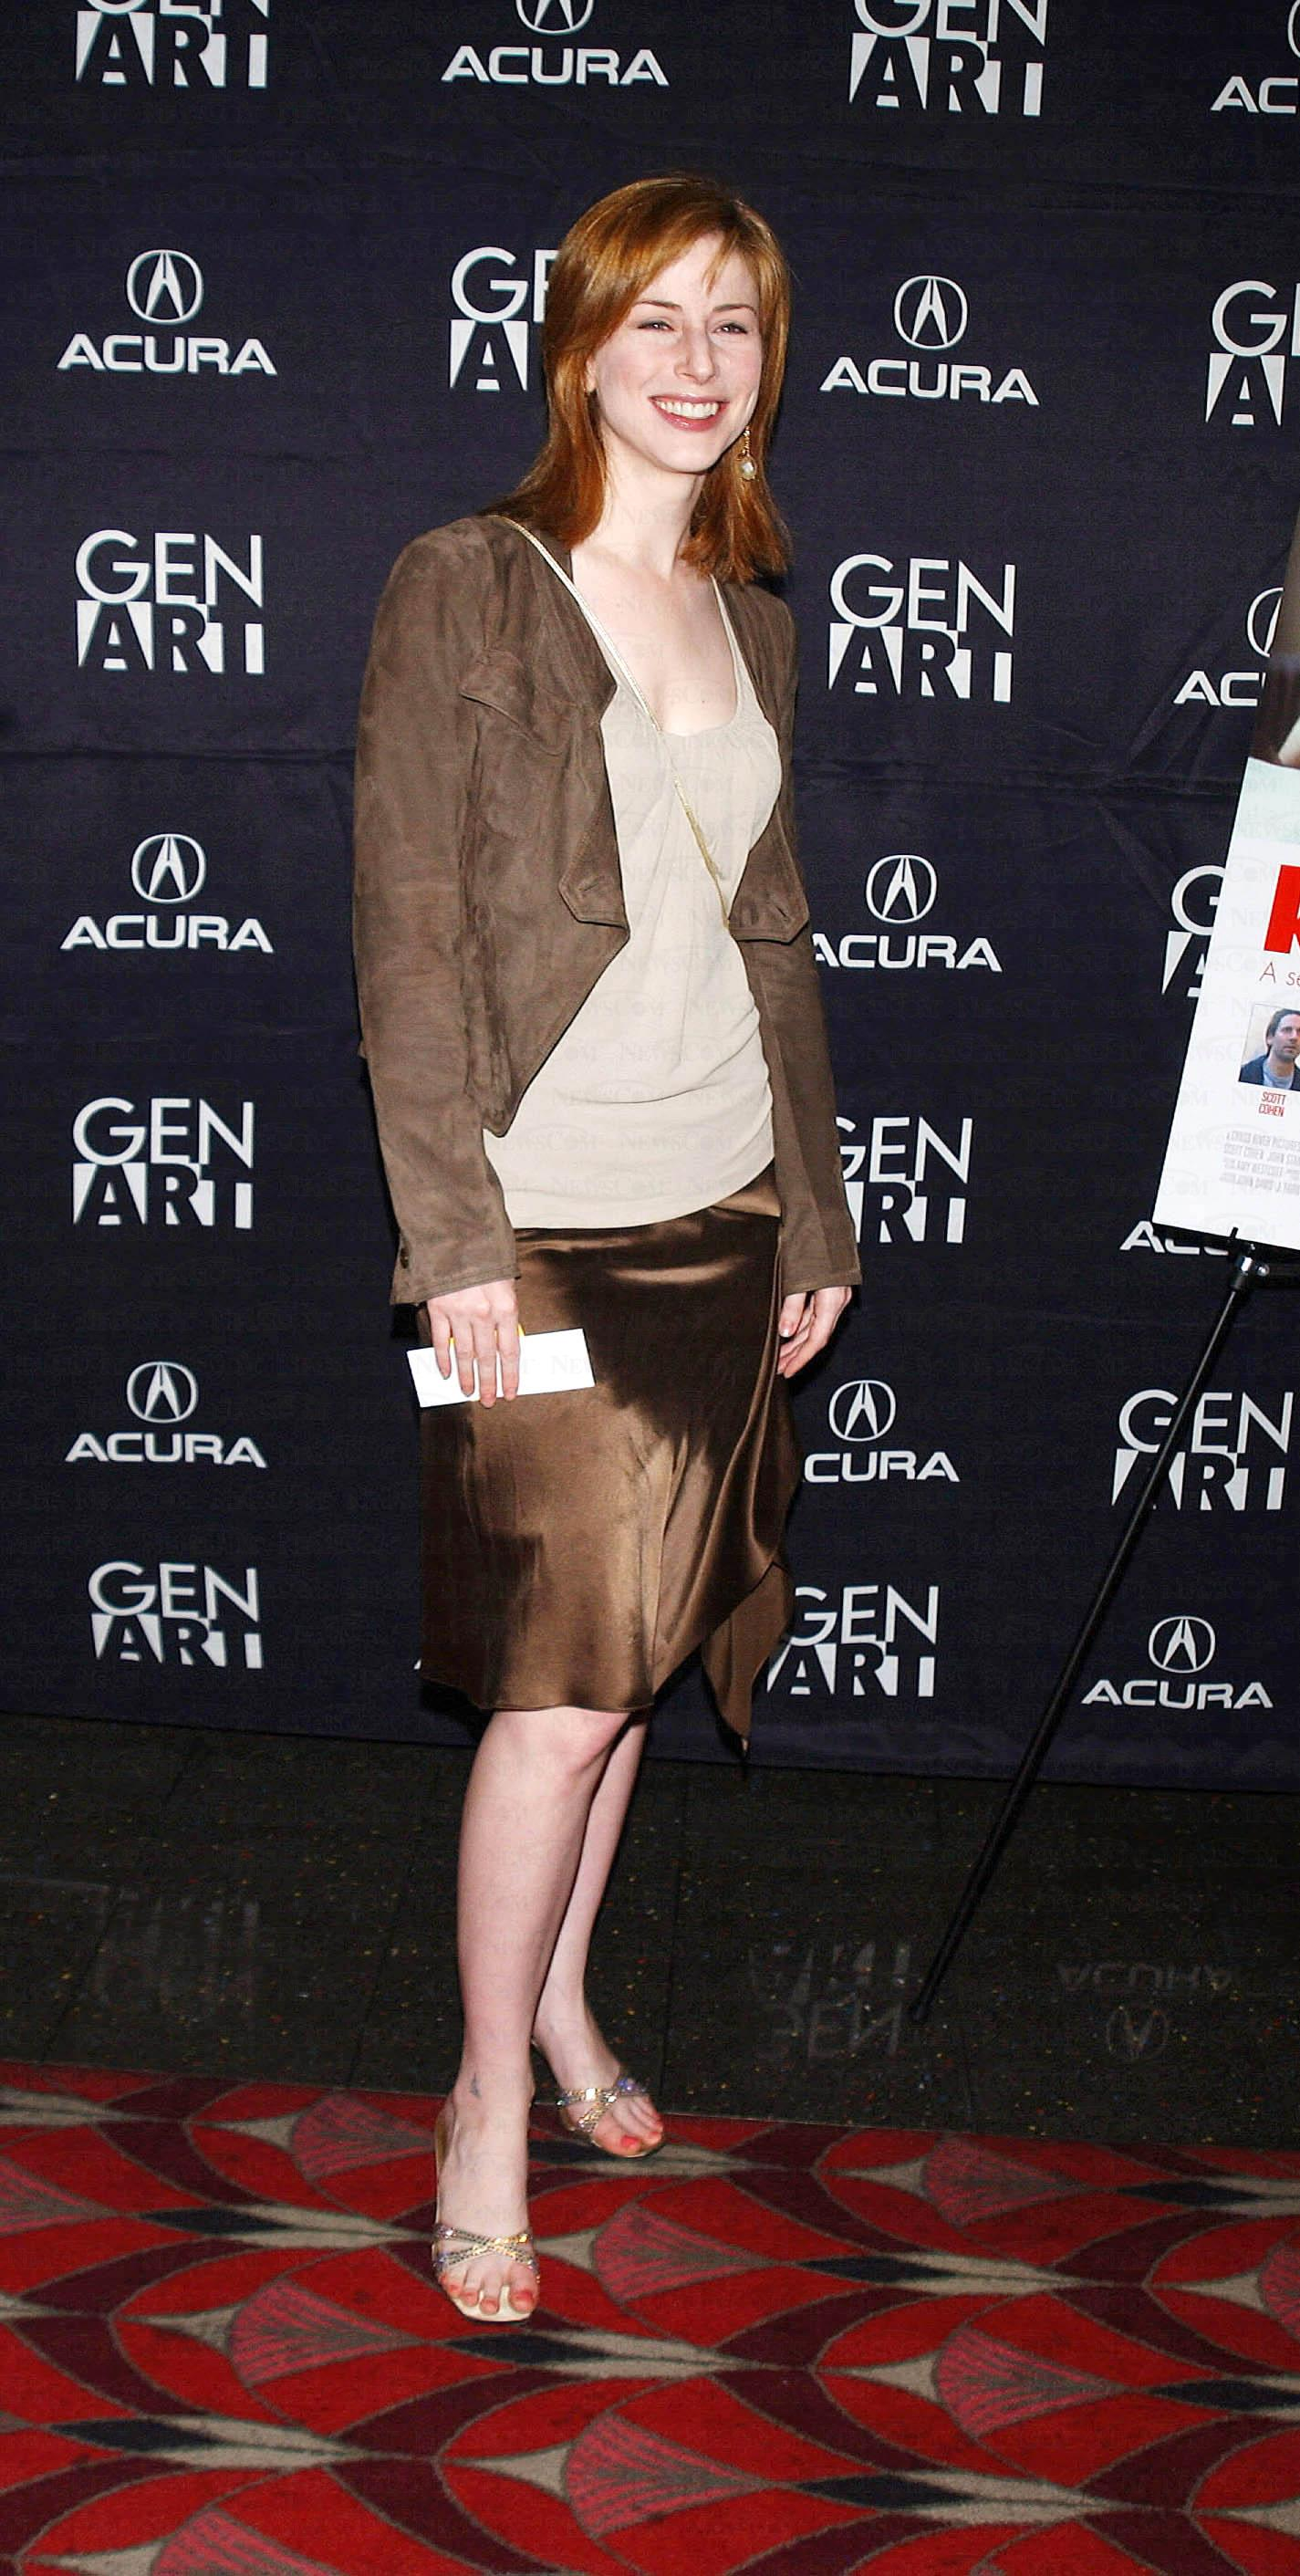 Diane neal s legs picture 570